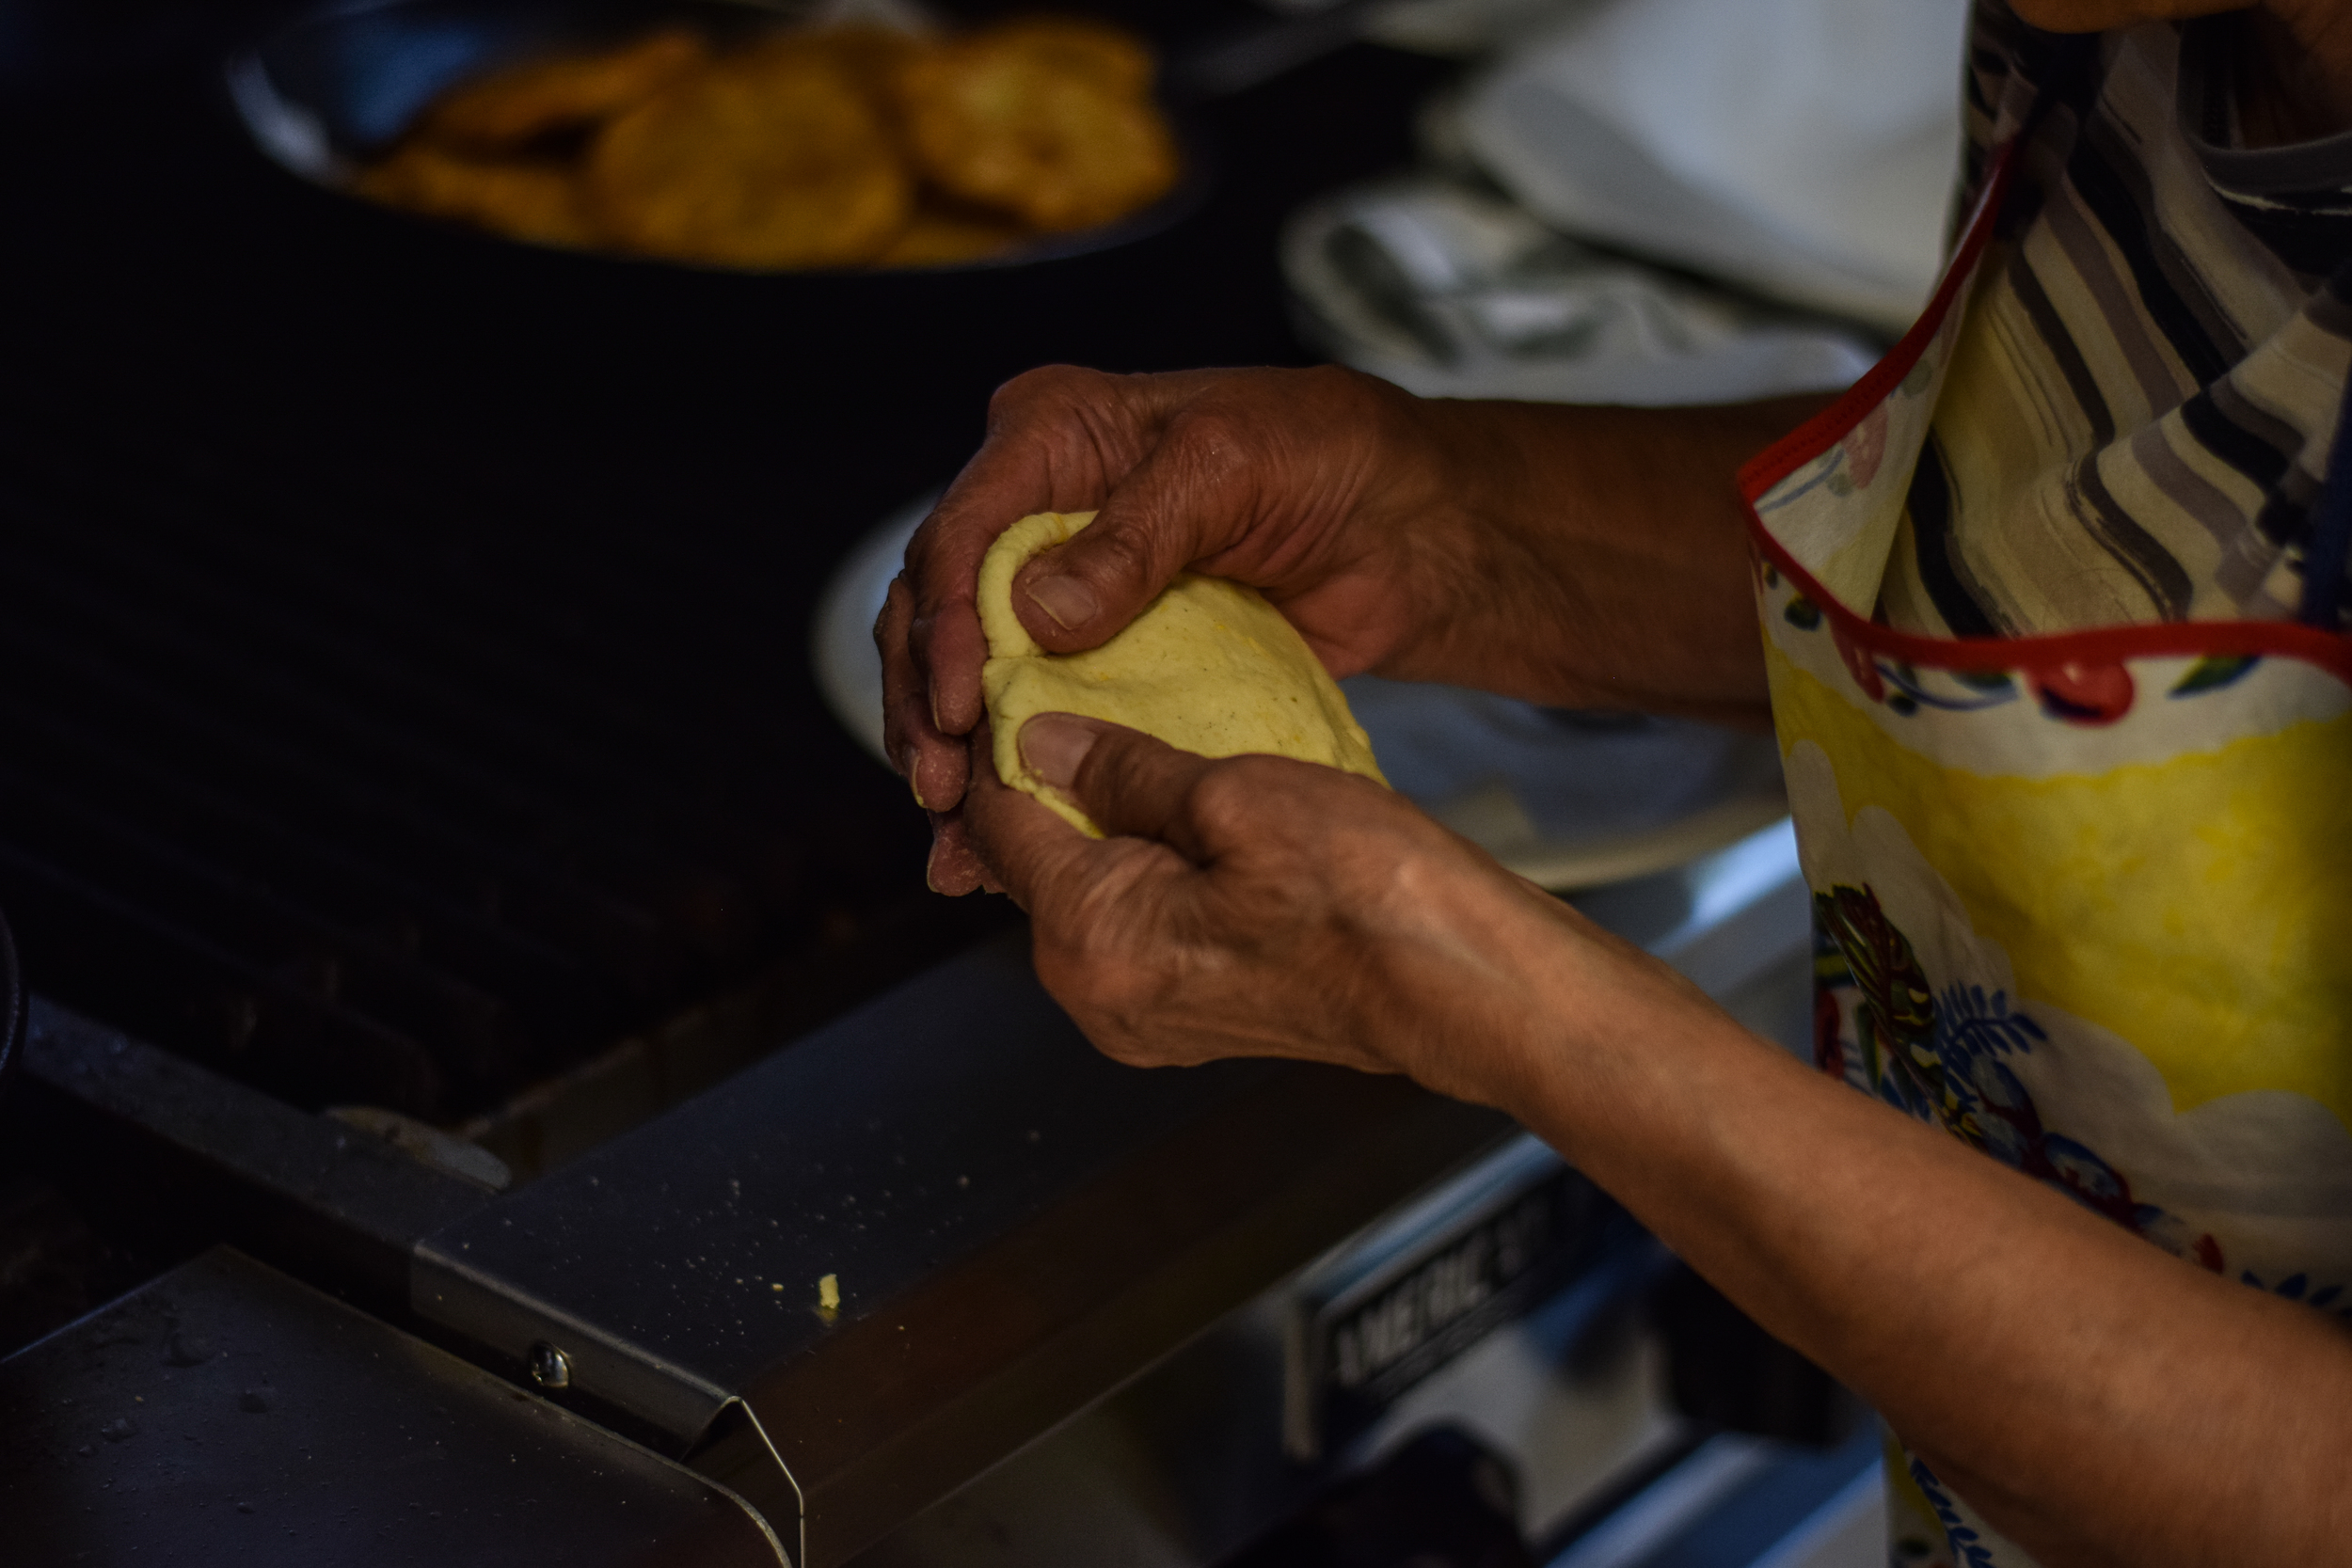 Making enchiladas sonorenses, a local specialty